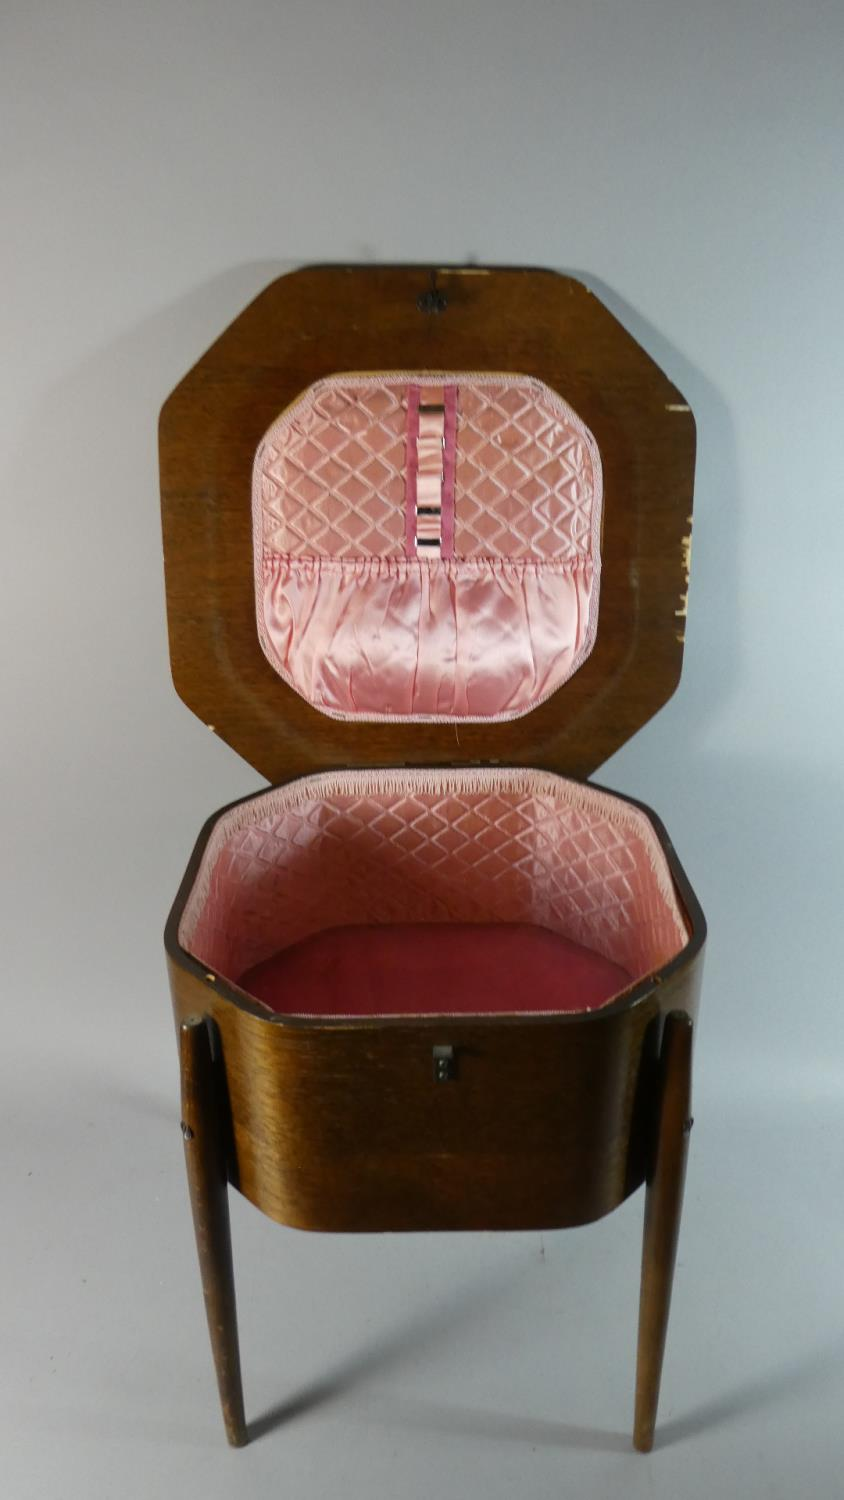 Lot 313 - An Edwardian Oak Lift Top Sewing Box with Satin Lined Interior, 44.5cm Wide